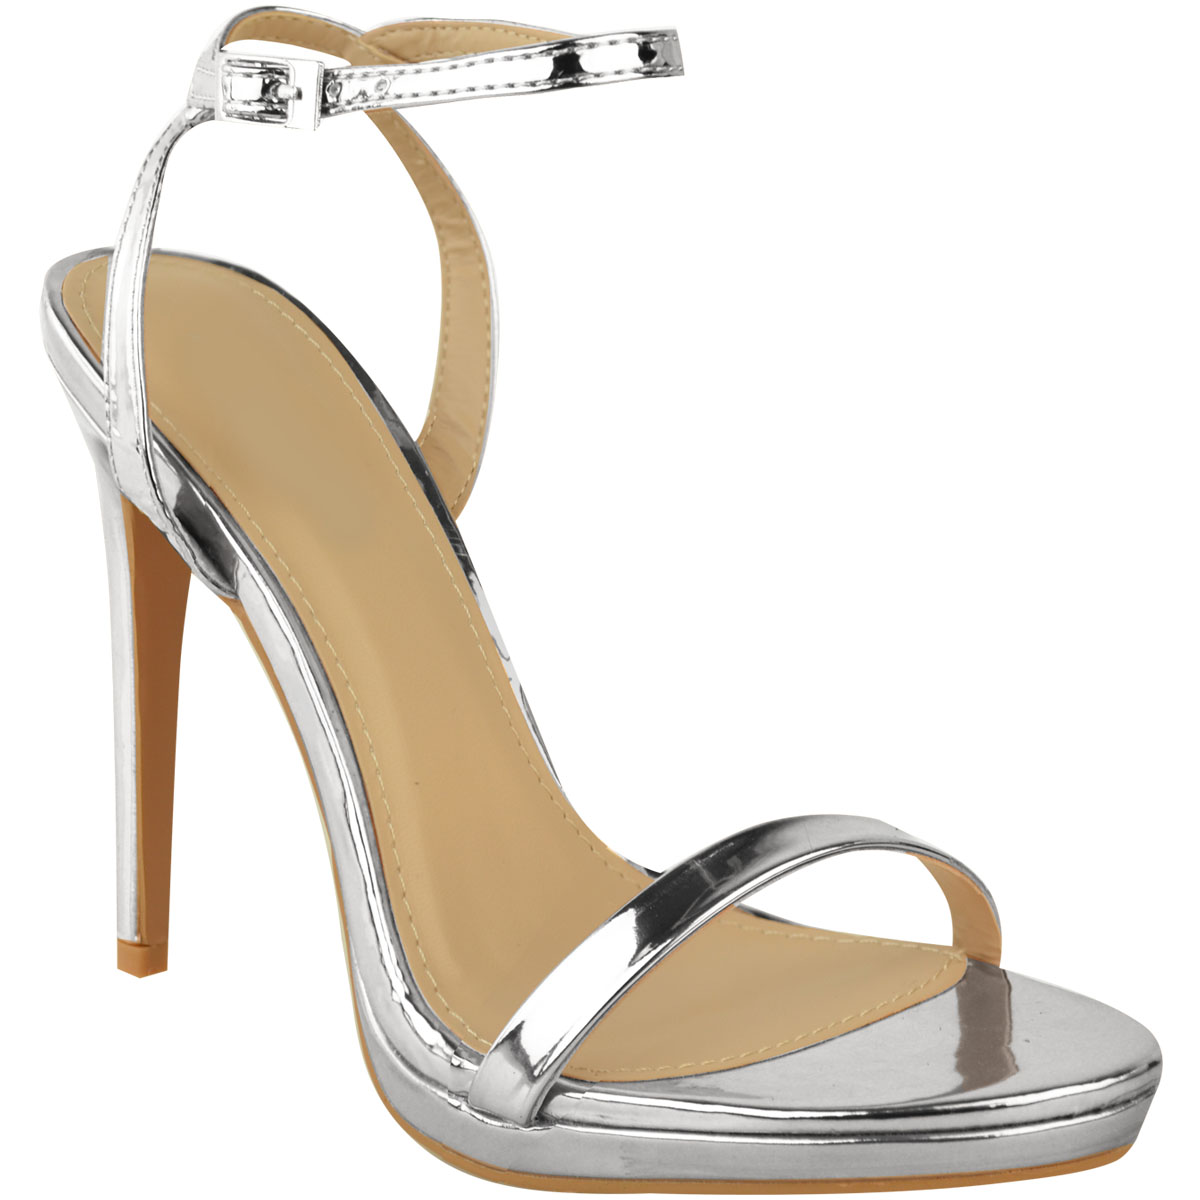 719df9f6 Womens Ladies Stiletto High Heels Sandals Barely There Party ...